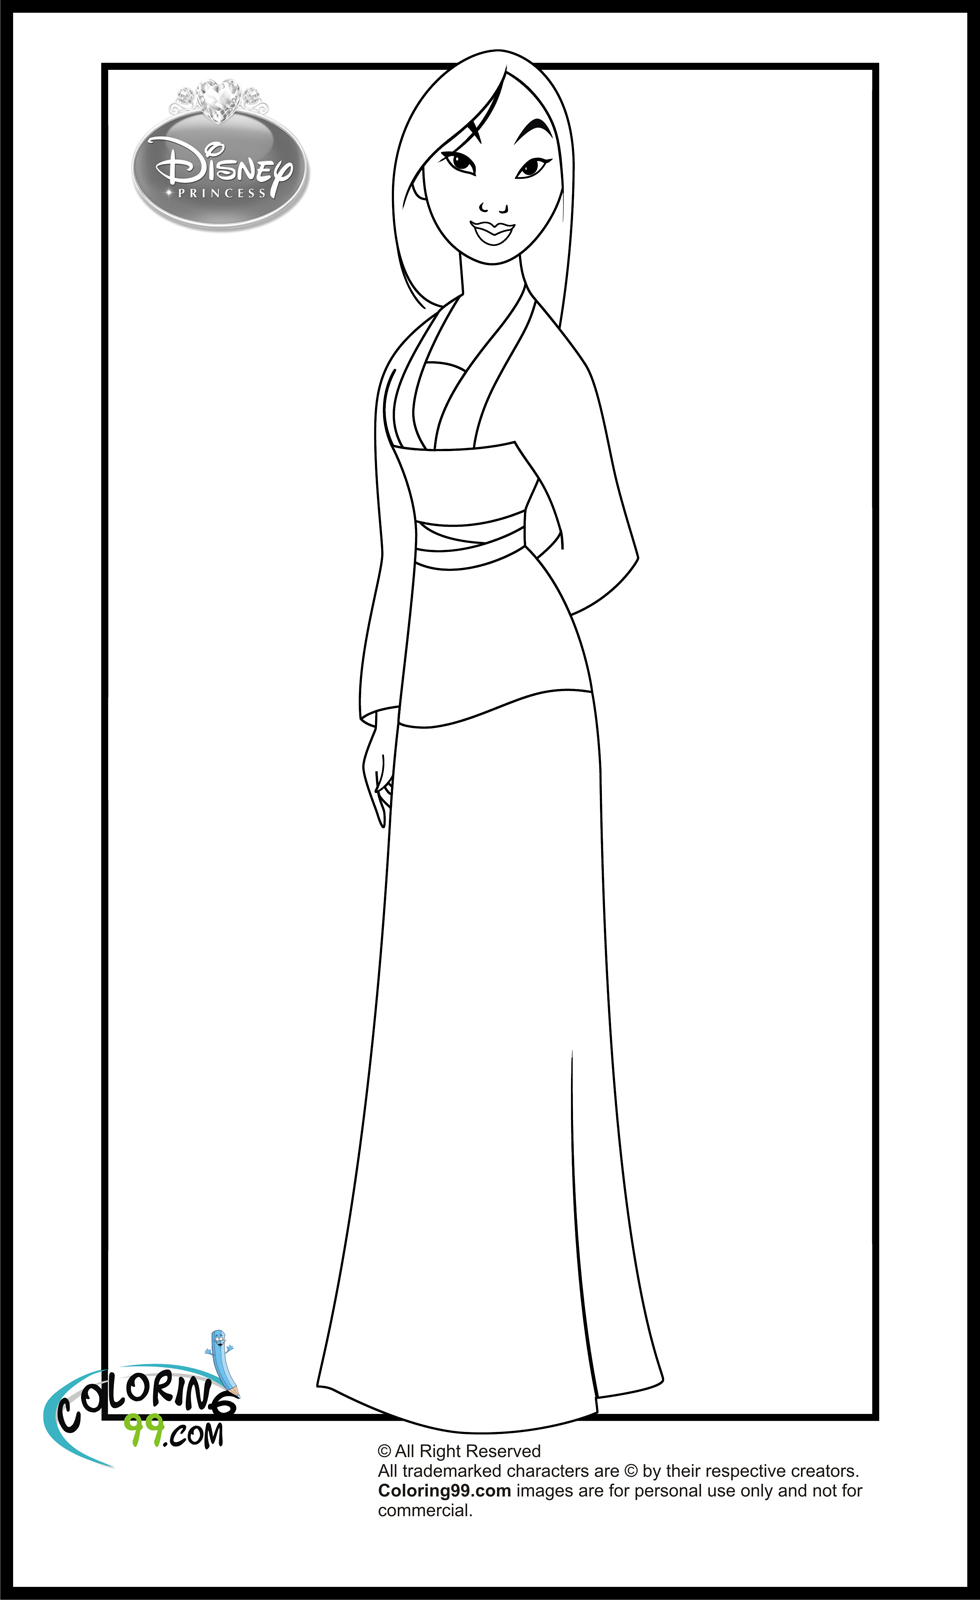 Disney Princess Coloring Pages Home Coloring Coloring Pages